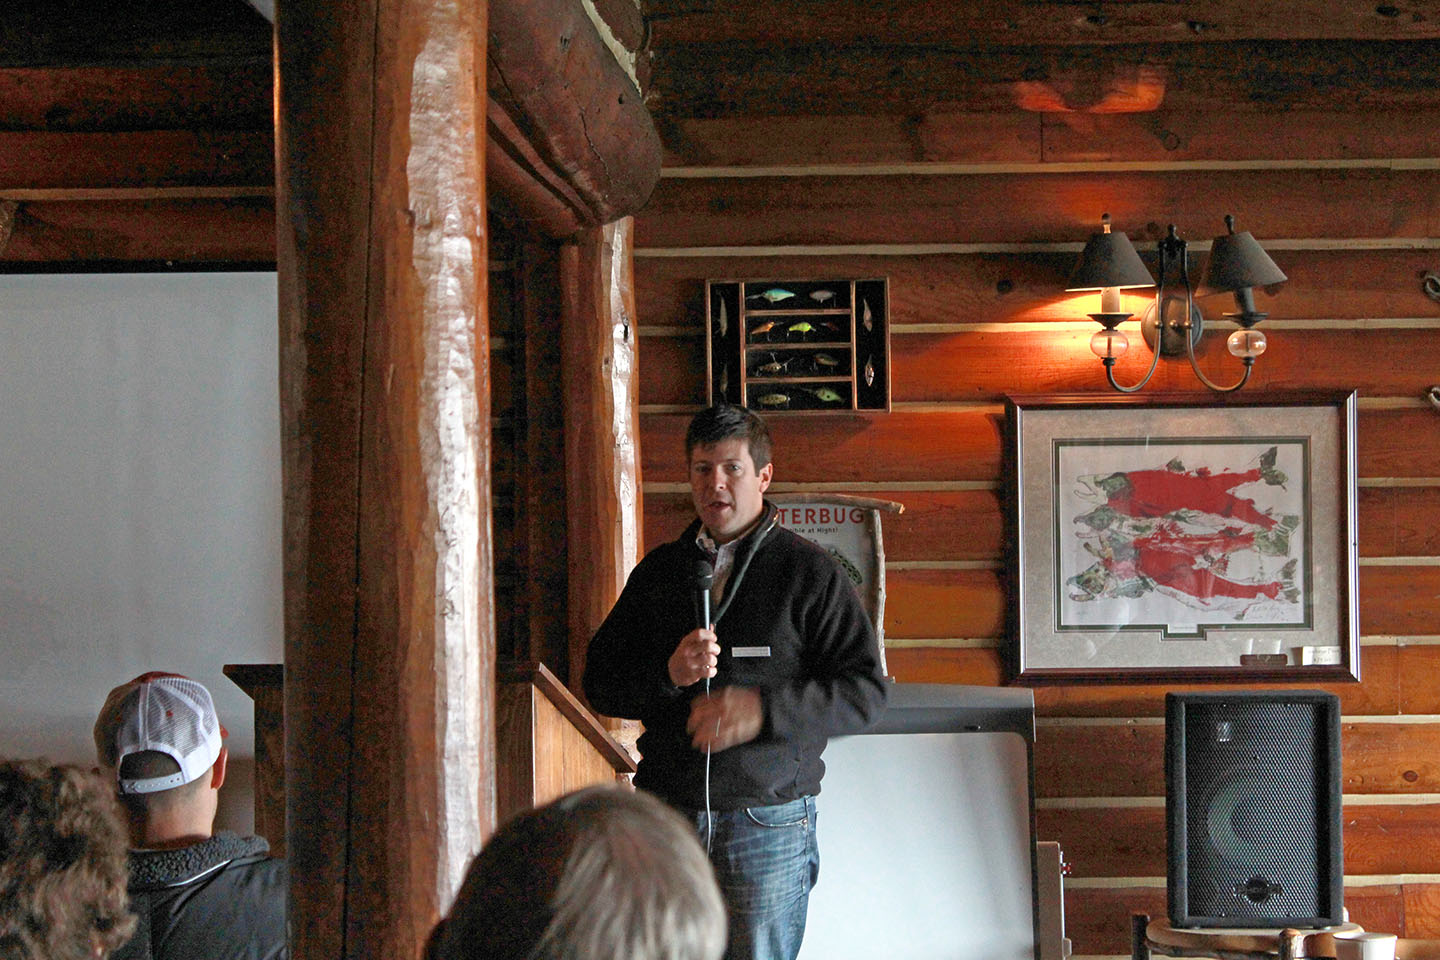 Jonathan Oppenheimer '92 speaking at the Idaho Conservation League's annual Wild Idaho! conference at Redfish Lake Lodge in Idaho's Sawtooth National Recreation Area. MARY BETH WHITAKER